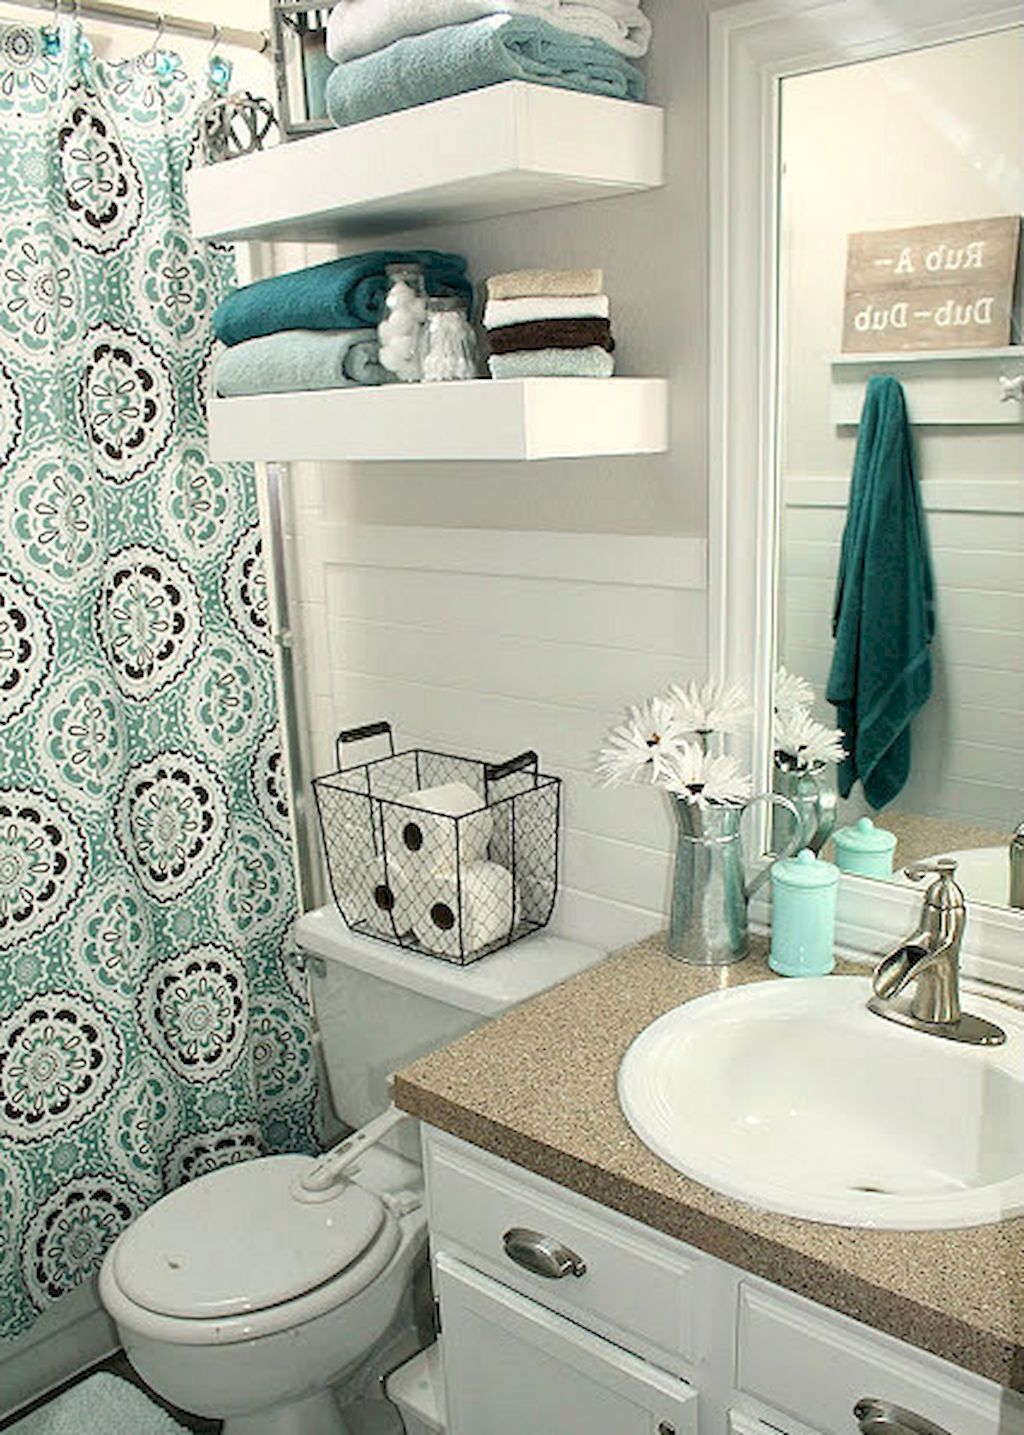 bathroom decor pinterest adorable 30 diy small apartment decorating ideas on a 537